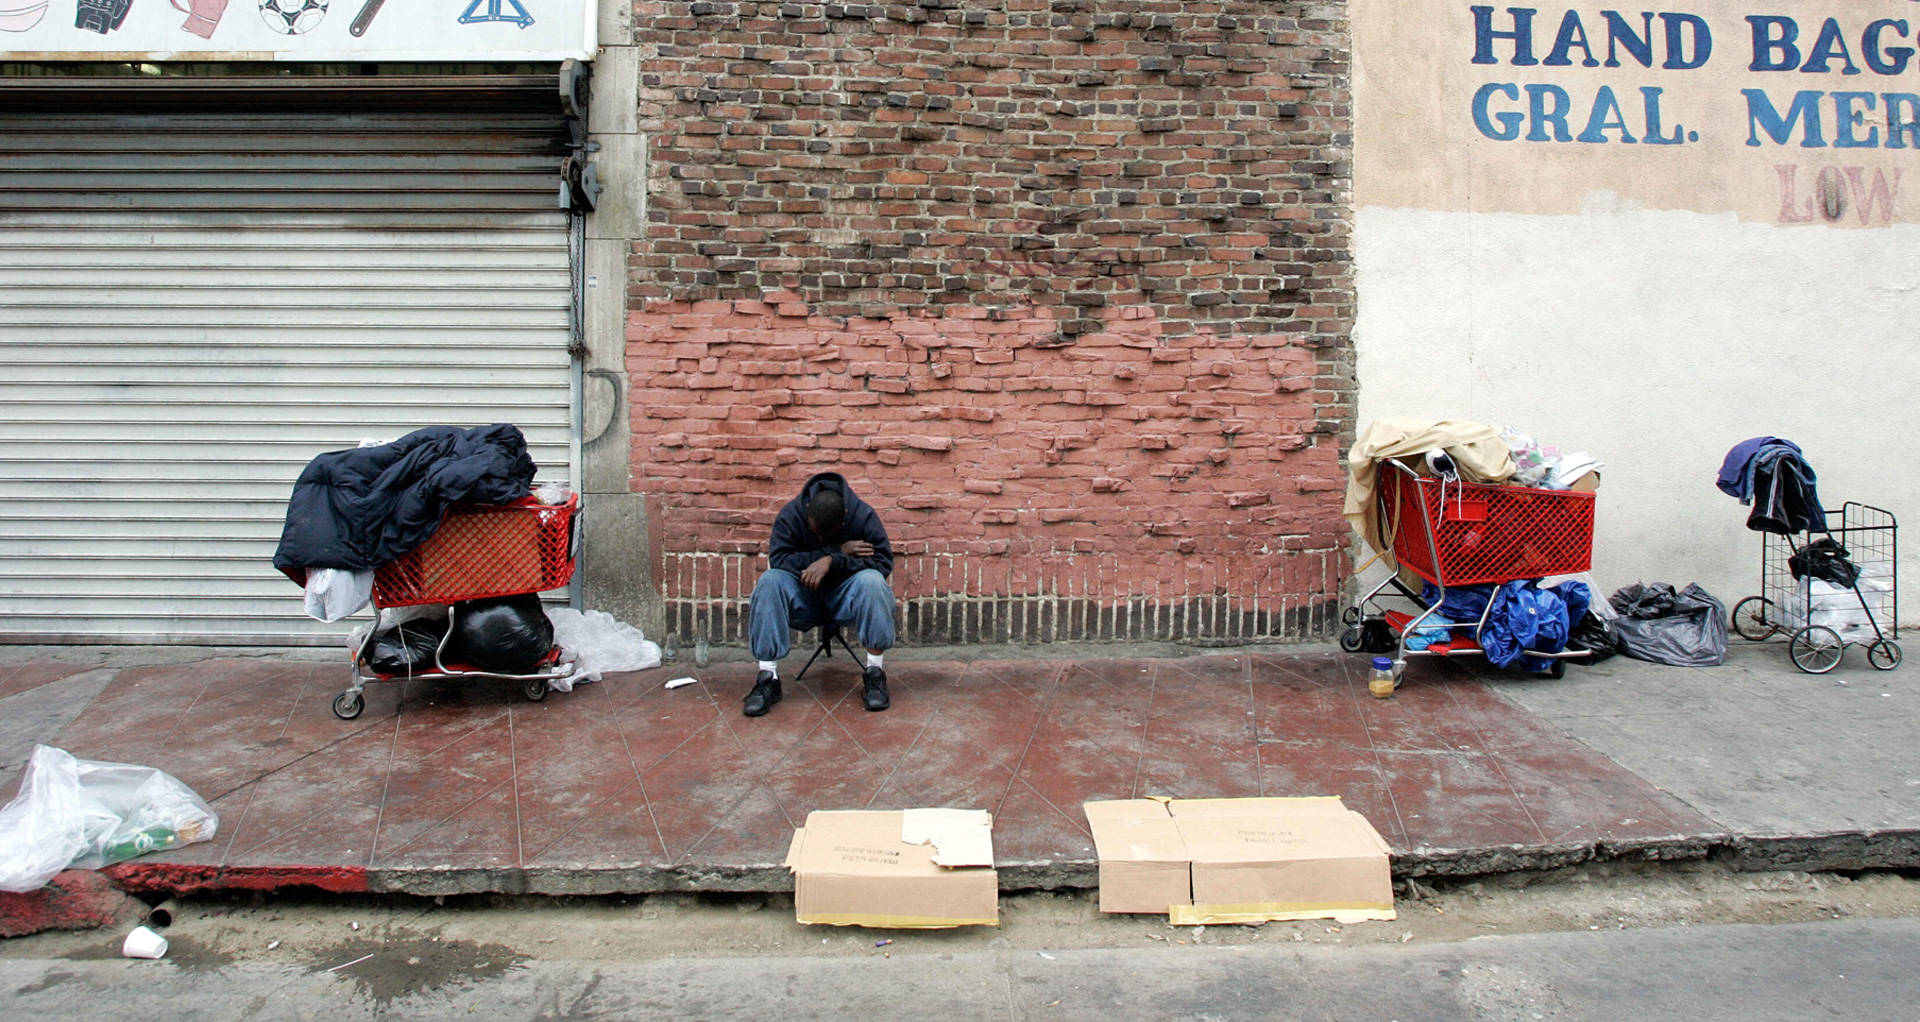 A homeless man waits to get in line for food distribution in Los Angeles. HECTOR MATA/AFP/Getty Images